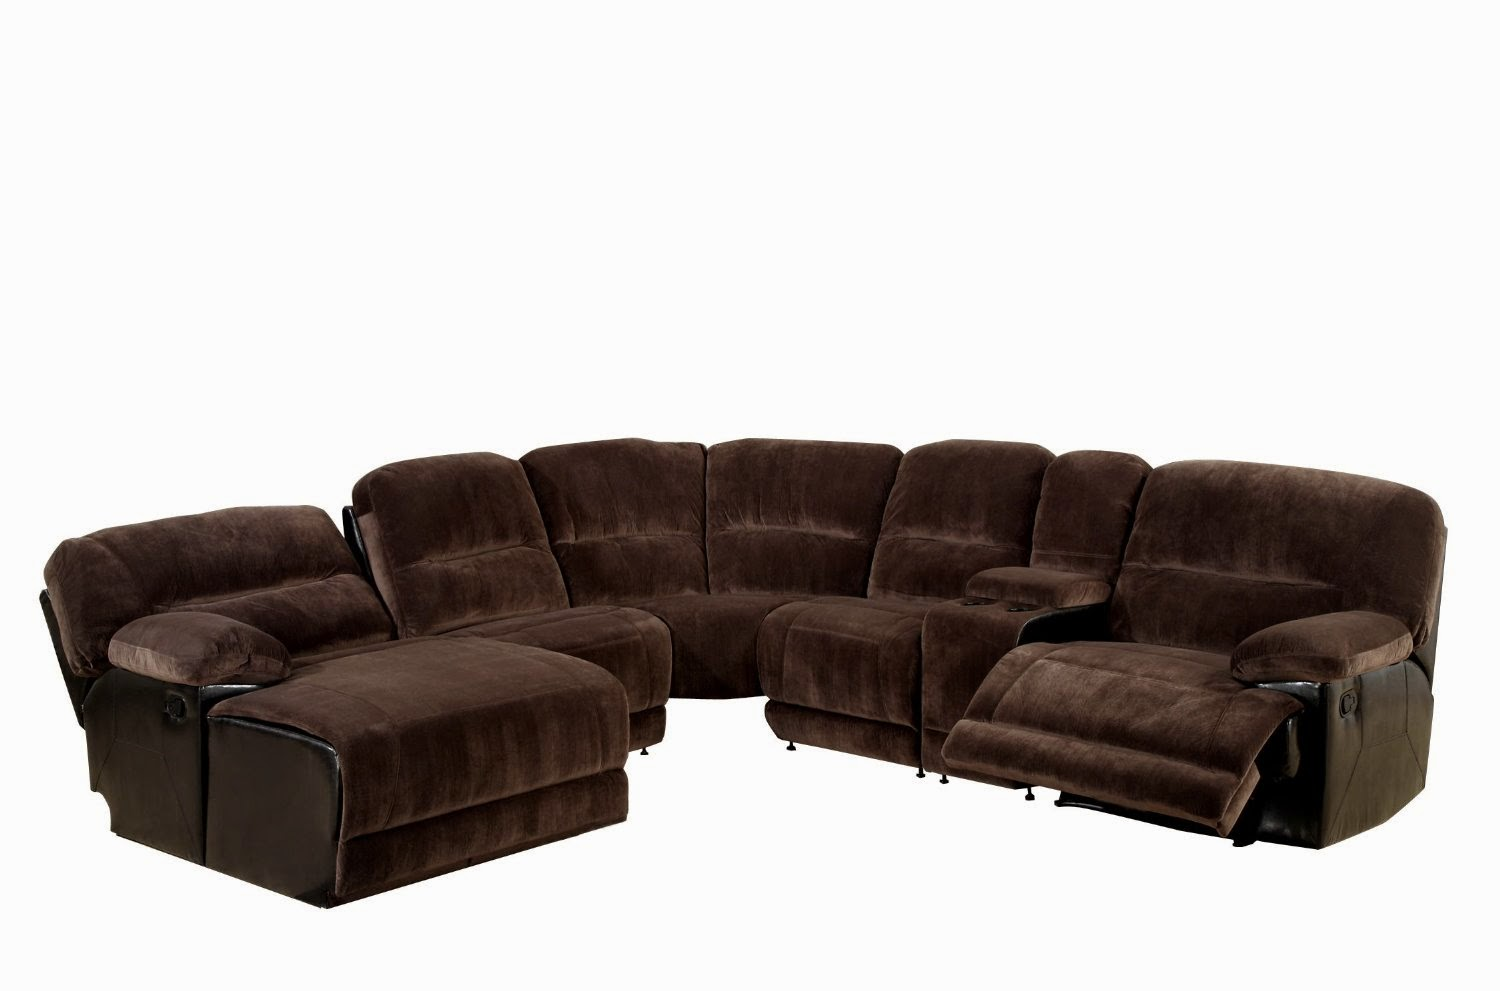 Reclining sofas for sale cheap saddle microfiber contemporary reclining sectional sofa Reclining loveseat sale